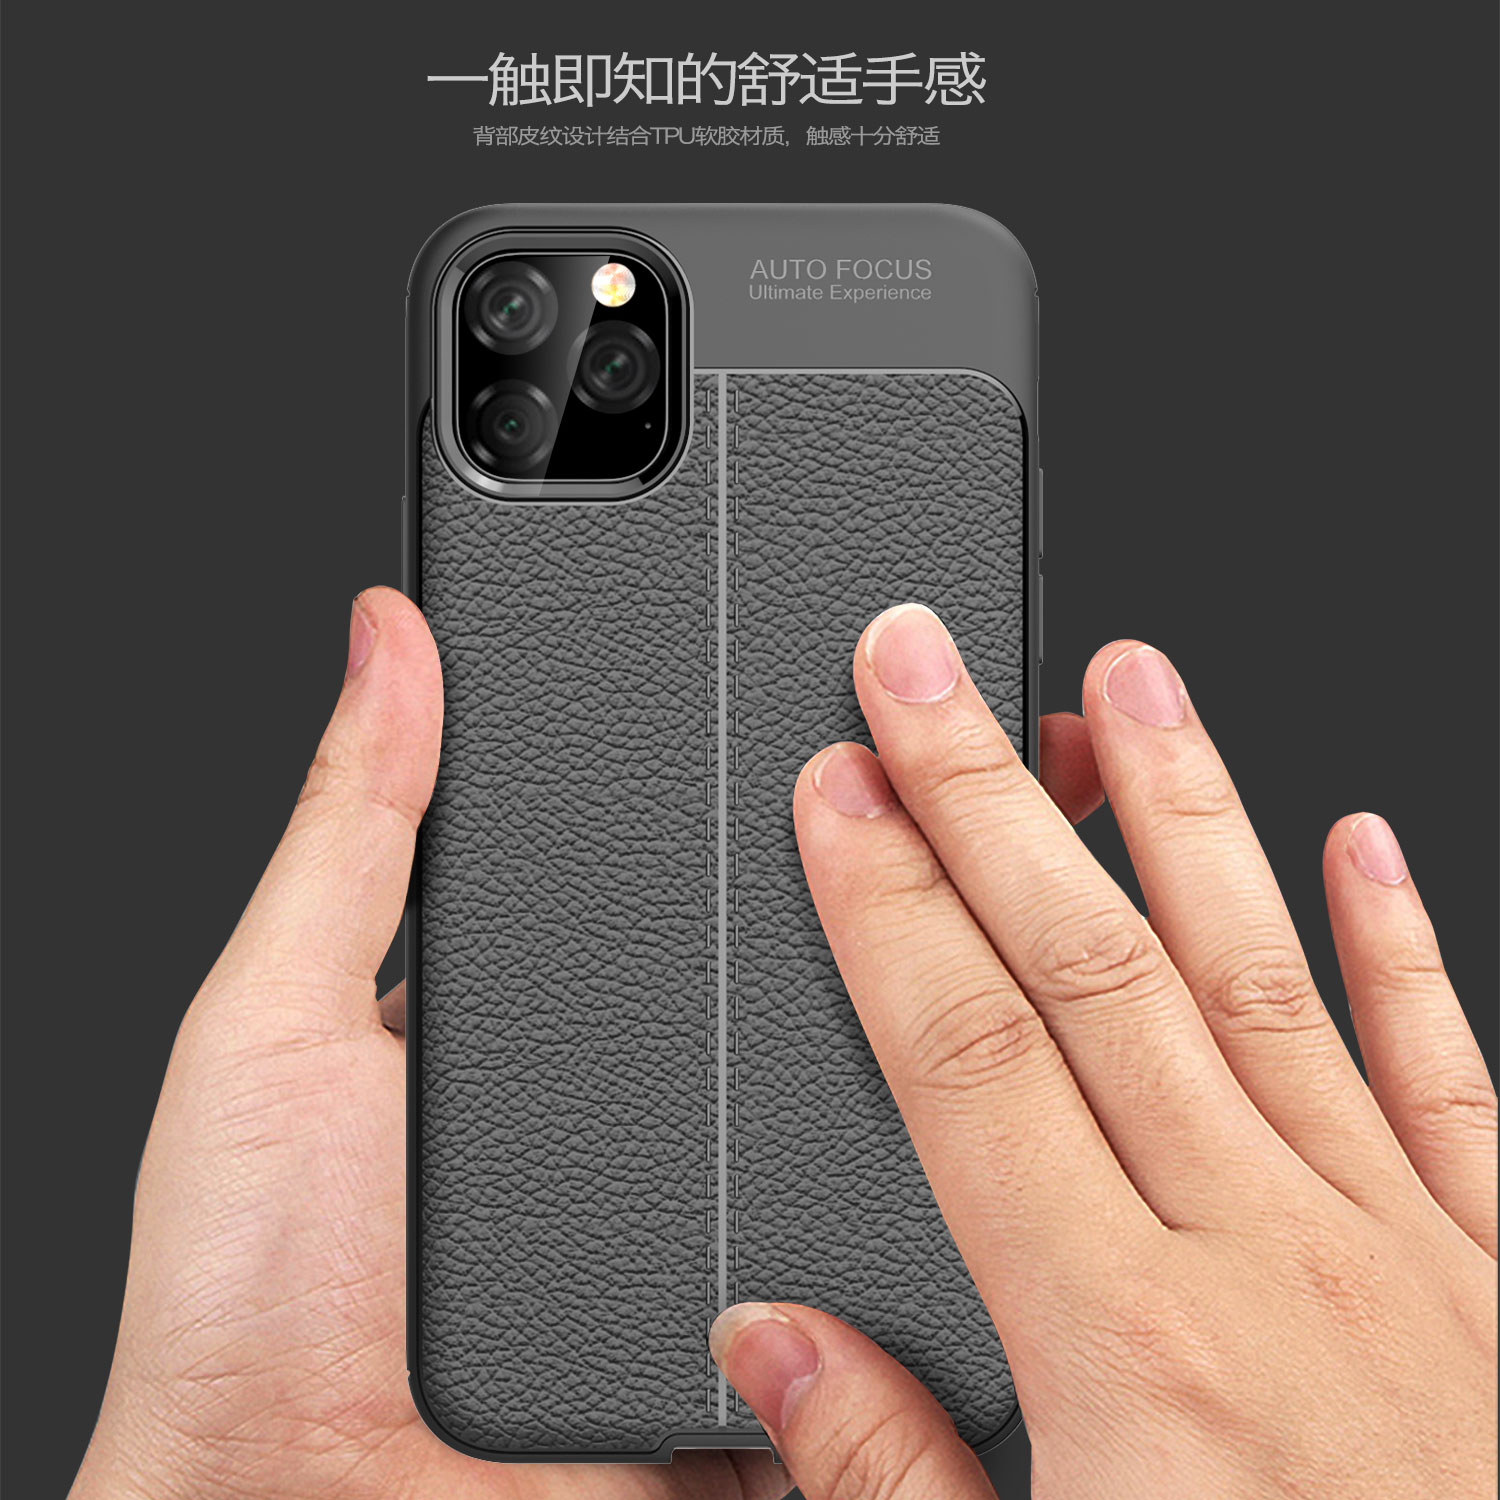 H58ea4923412144dd9941831ab1096455X For iPhone 11 Pro Max Case 7 8 5S 6S Plus XR XS SE Apple Case Luxury Leather PU Soft Silicone Phone Back Cover For iPhone 11 Pro